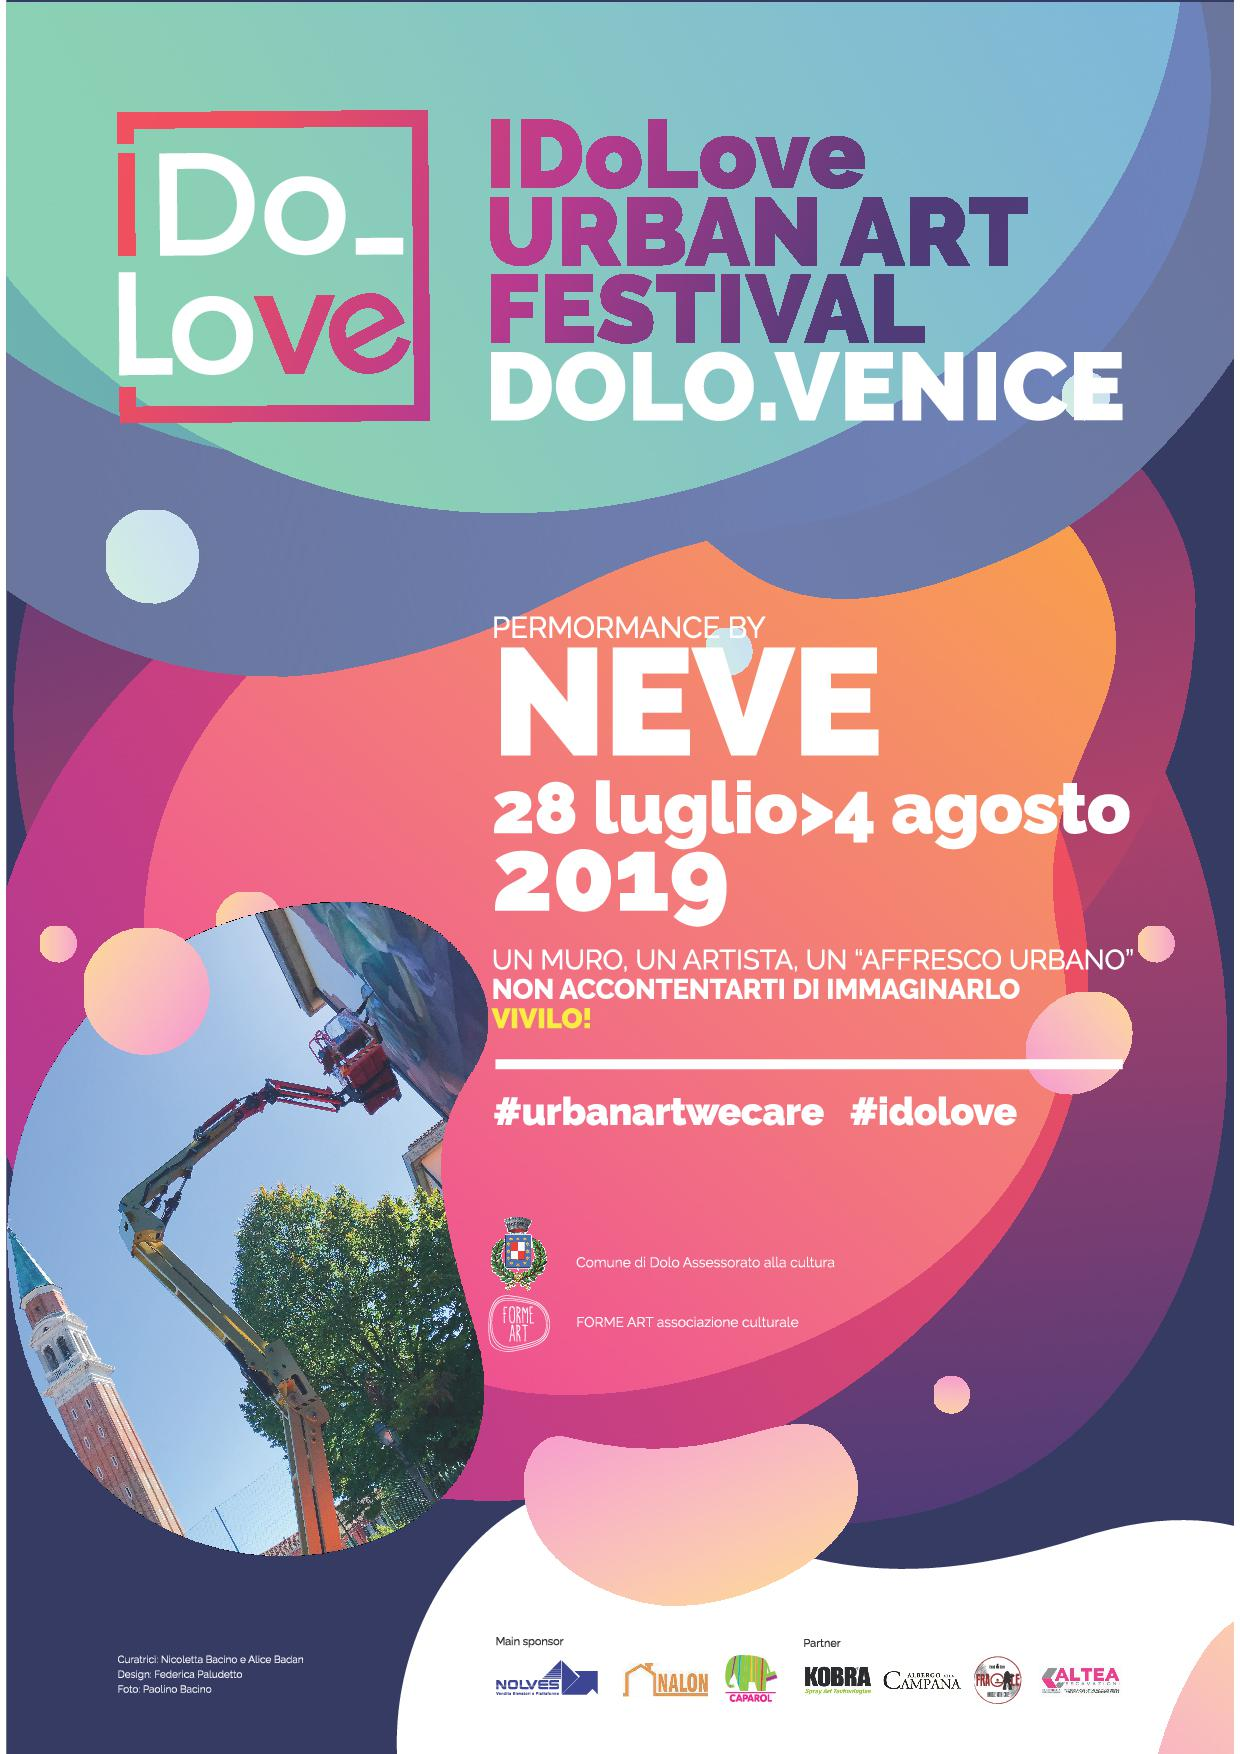 'IDoLove URBAN ART FESTIVAL DOLO.VENICE: PERFORMANCE BY NEVE'